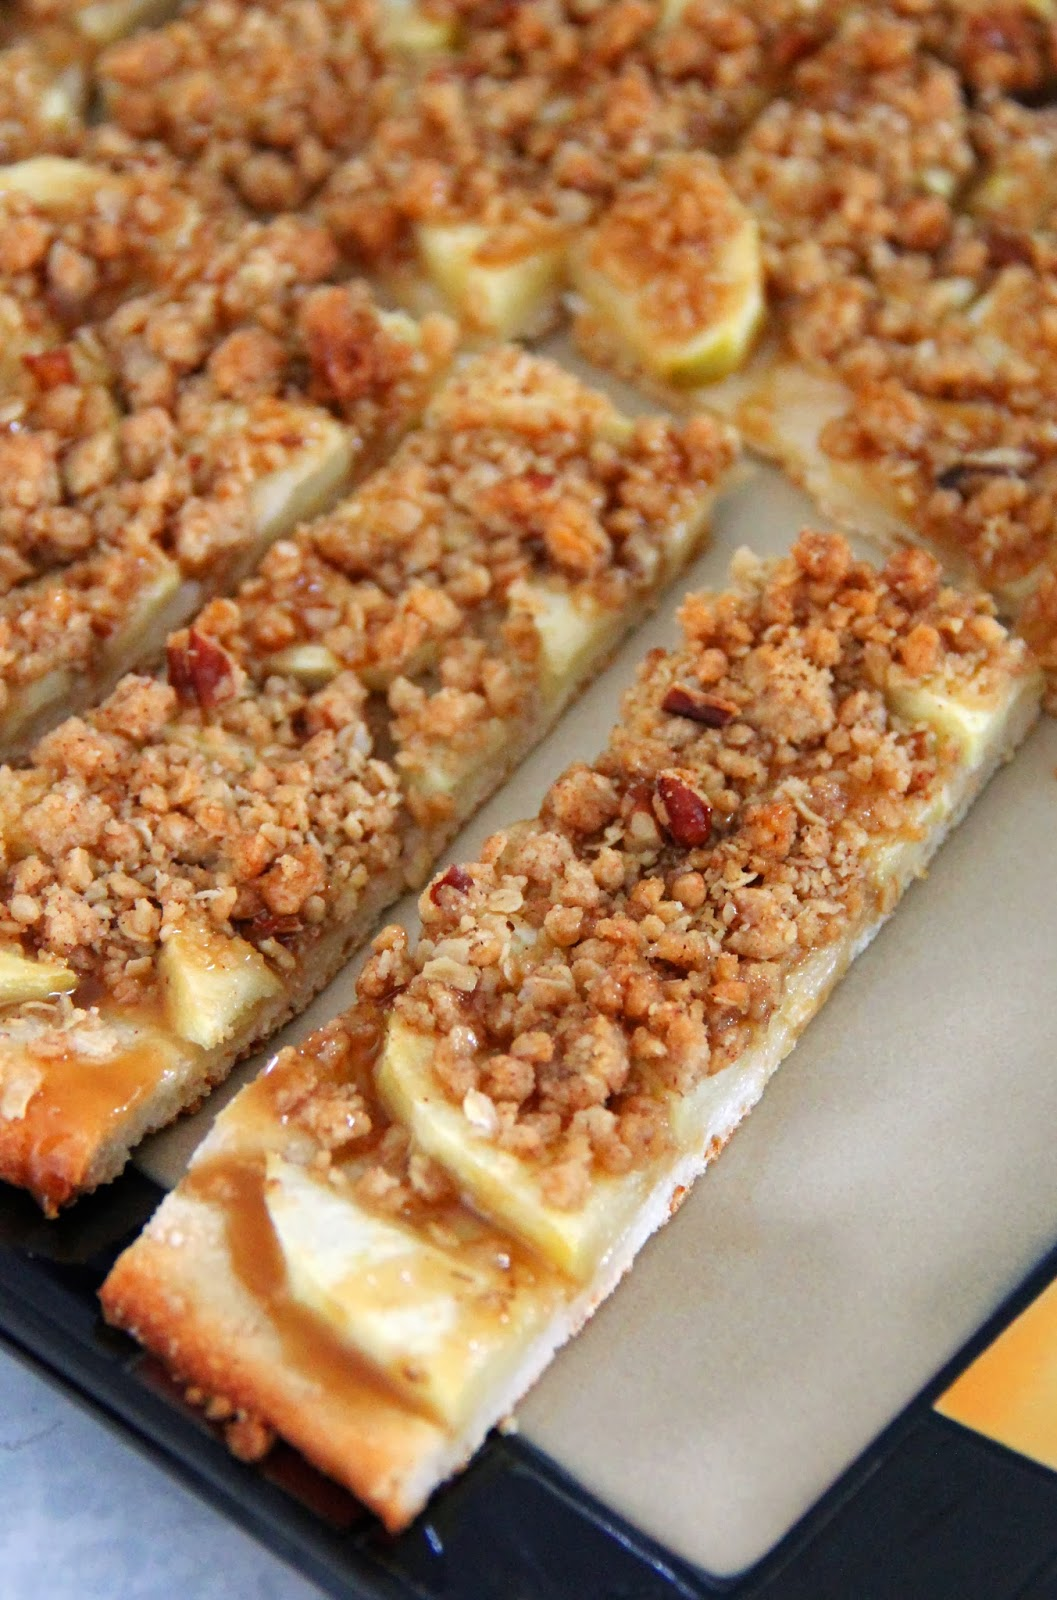 ... apple crisp pizza recipe apple caramel apple crisp pizza caramel apple